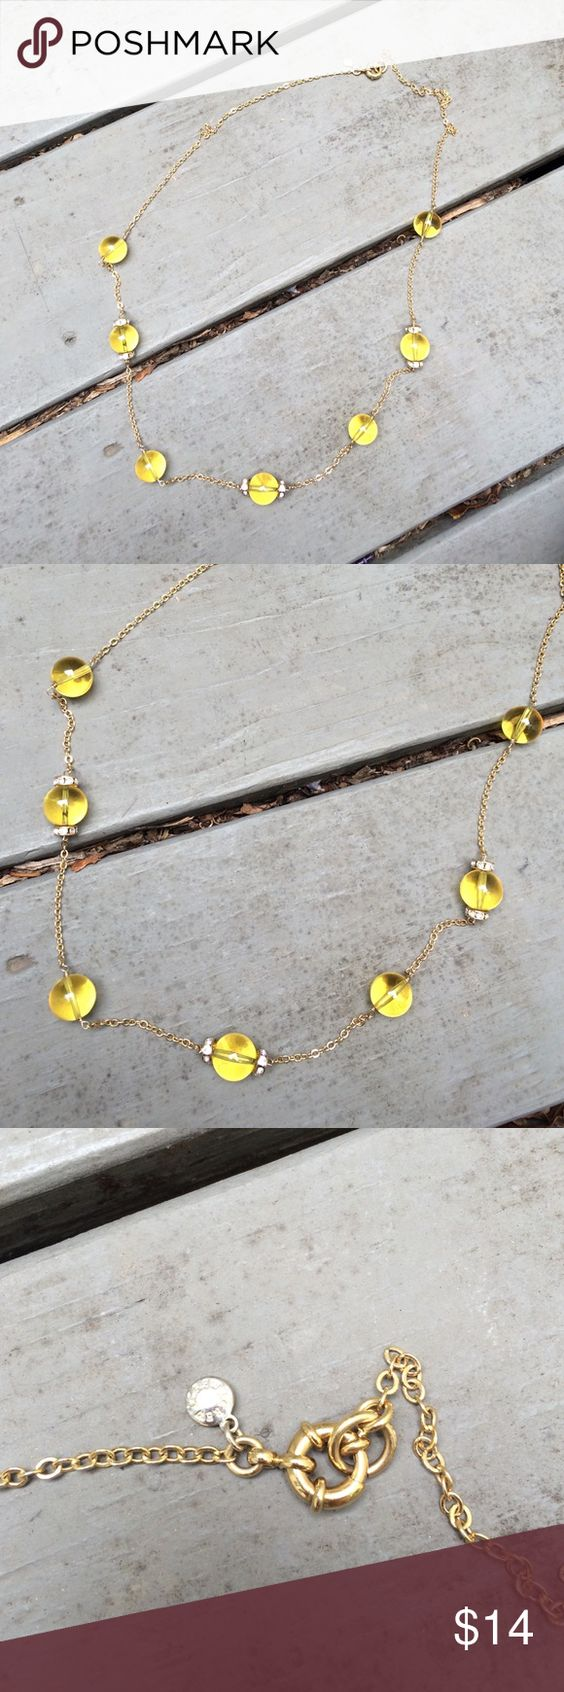 """J. CREW Yellow bead gold tone Necklace Used a few times. Gold tone necklace with yellow beads and faux crystals. Goes past my bust when wearing. Length 17.5"""" when worn. Total length of 35"""". J. Crew Jewelry Necklaces"""